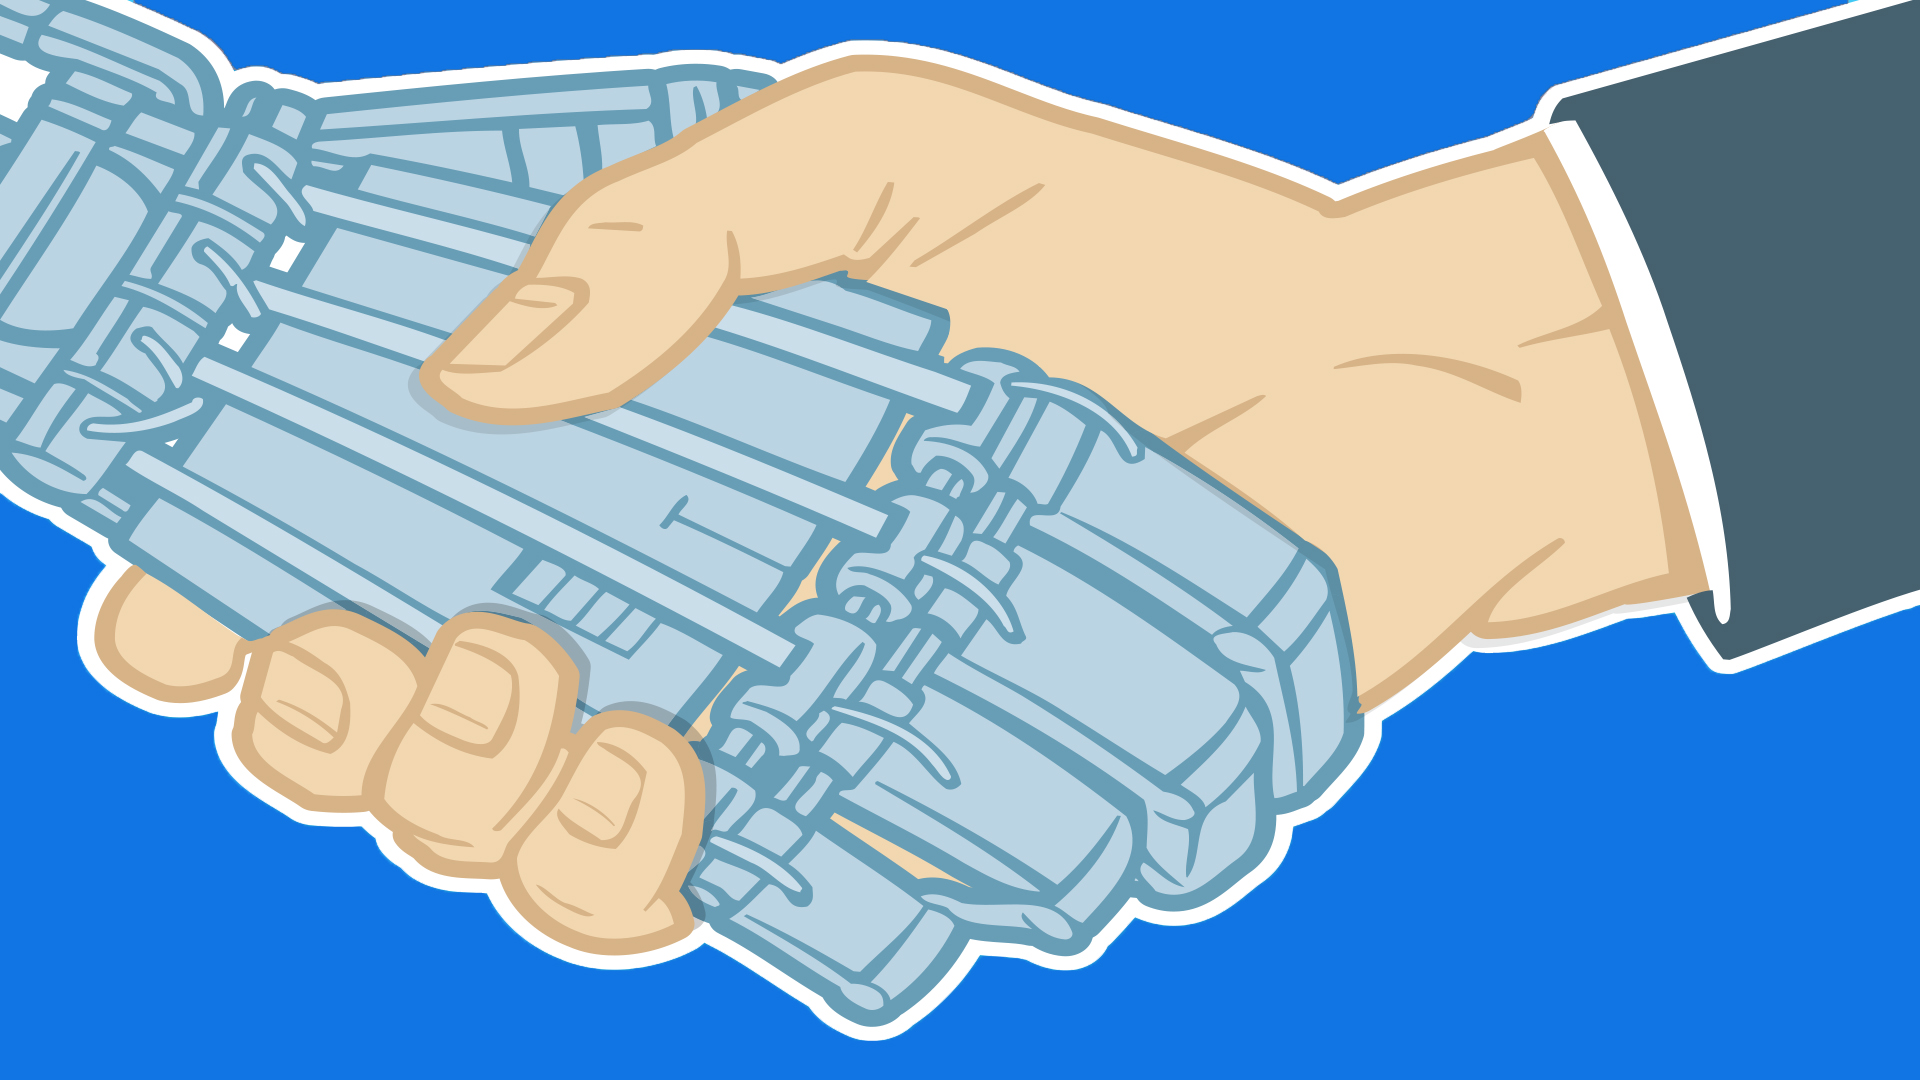 Illustration of two hands shaking, one human hand the other a robot or machine hand